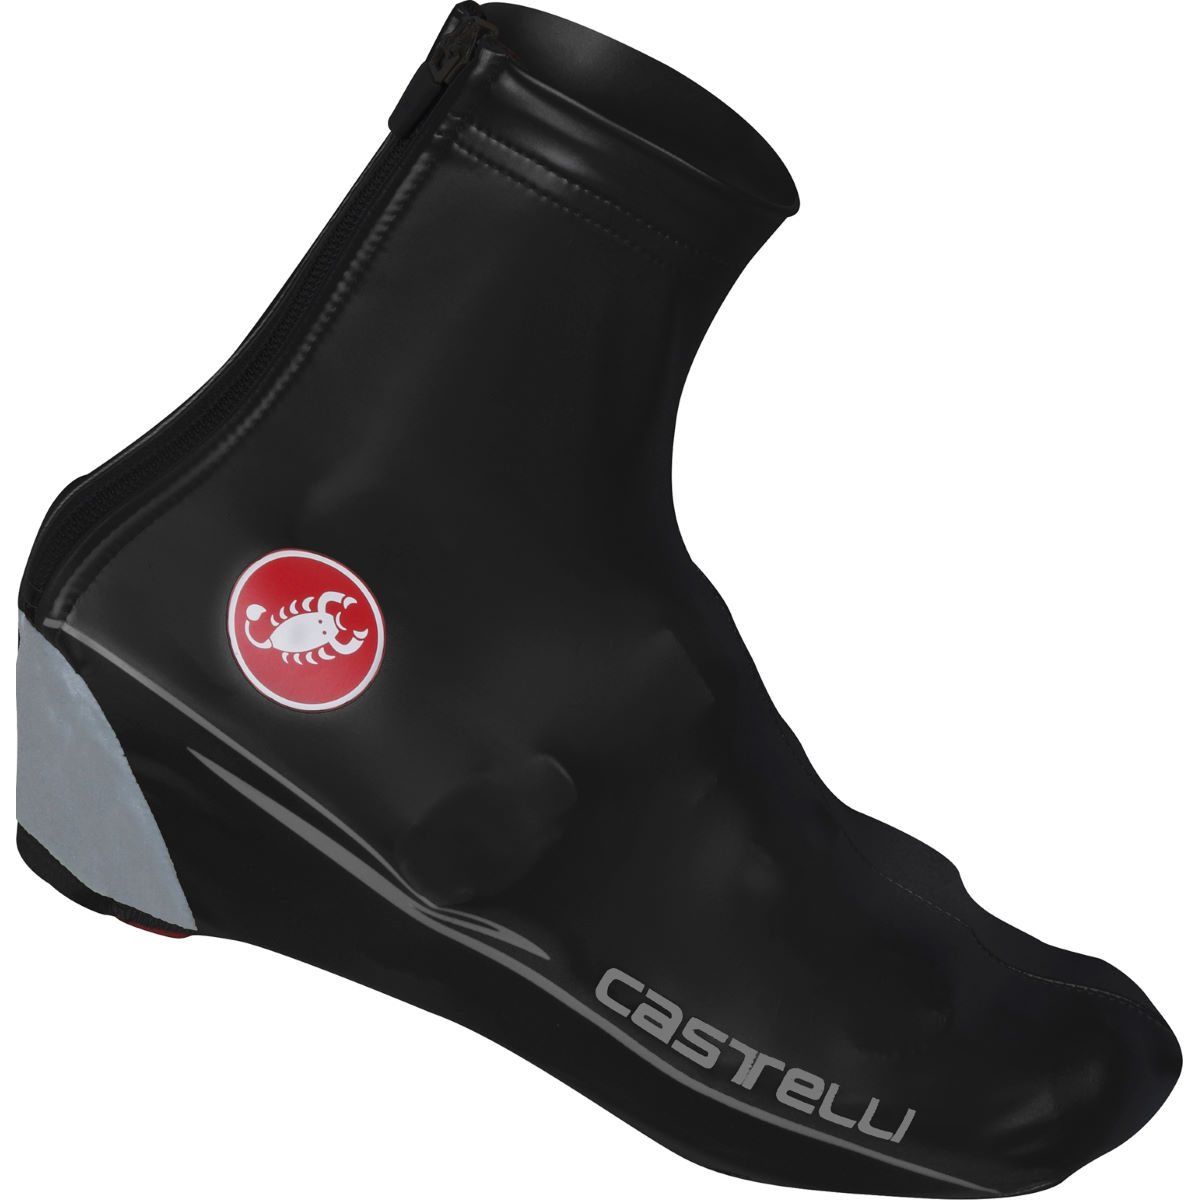 Couvre-chaussures Castelli Nano - S Noir Couvre-chaussures